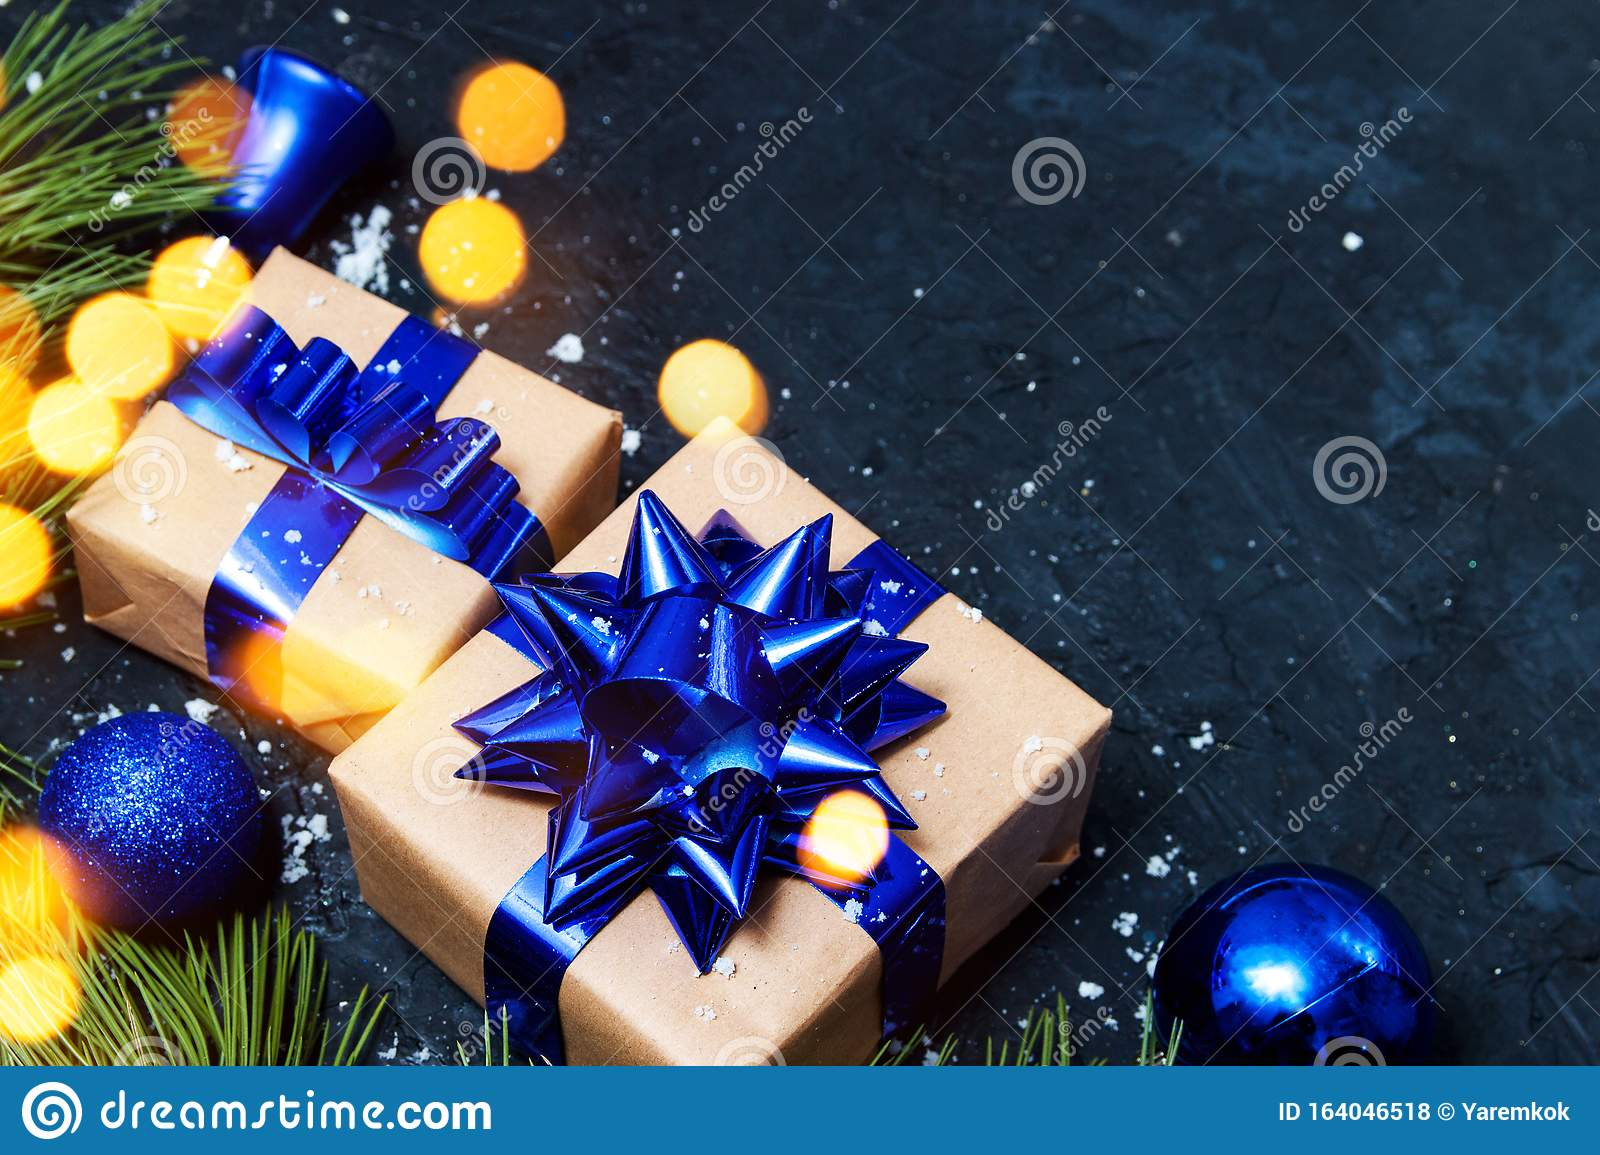 Christmas Greeting Card Composition Gift With Blue Christmas Tree And Balls Decoration With Light On Dark Background Top View Stock Photo Image Of Ornament Decorative 164046518